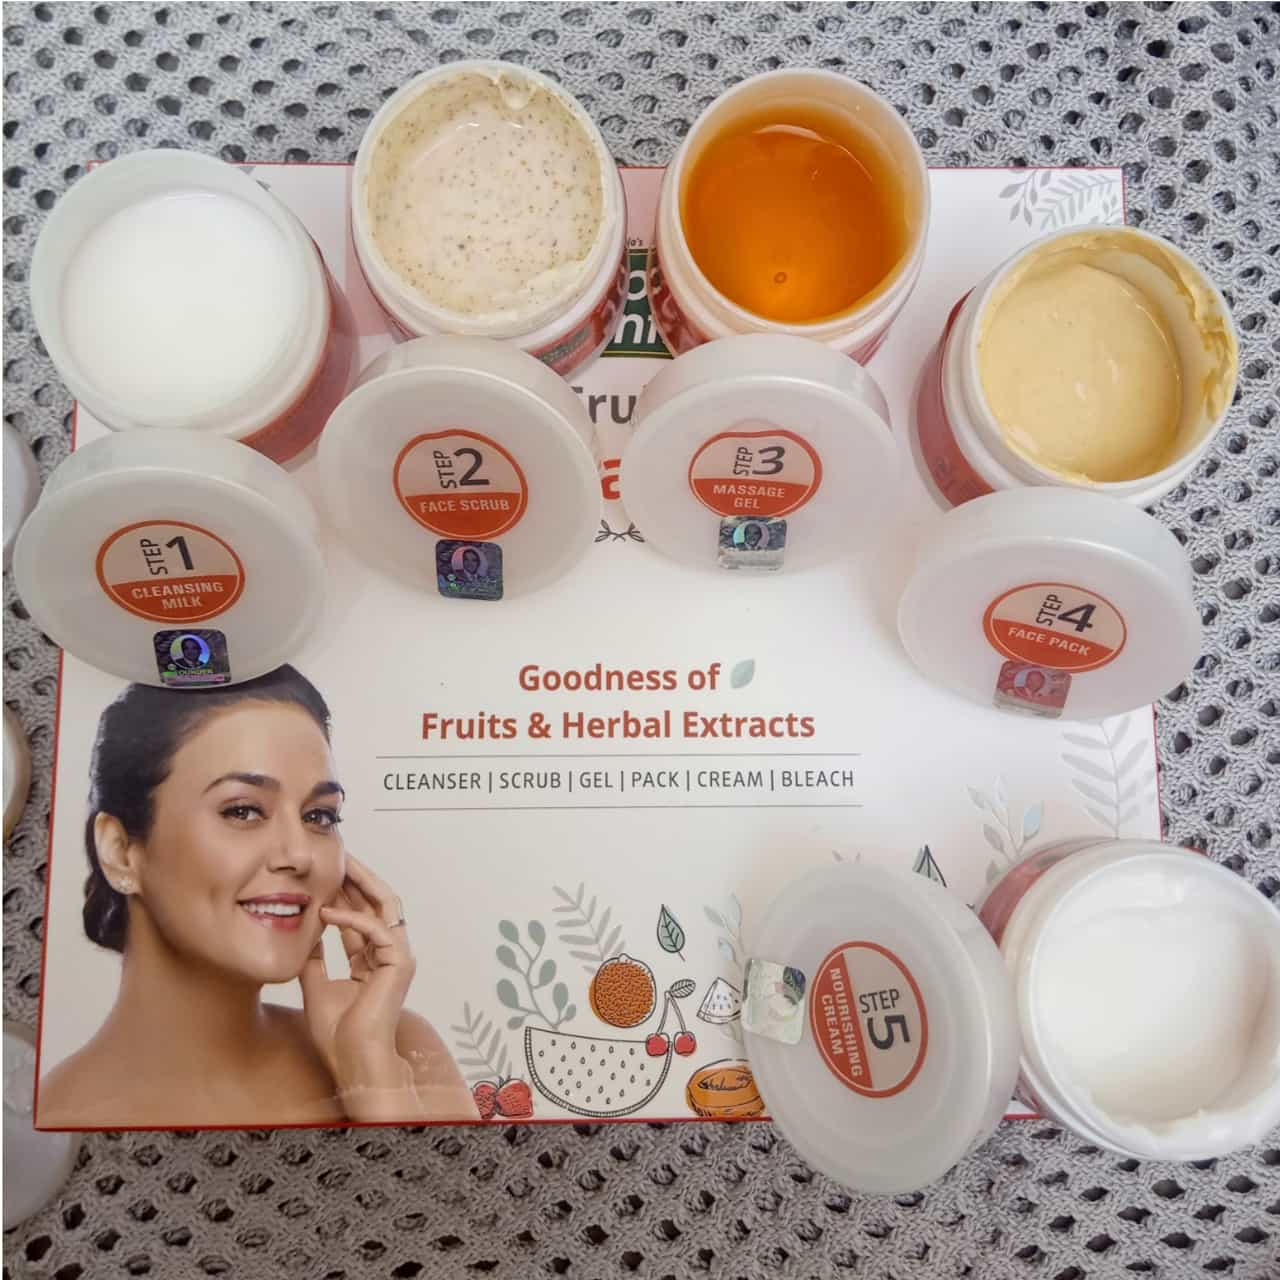 Roop Mantra Fruit Facial Kit-Your own home salon-By sonam22-1